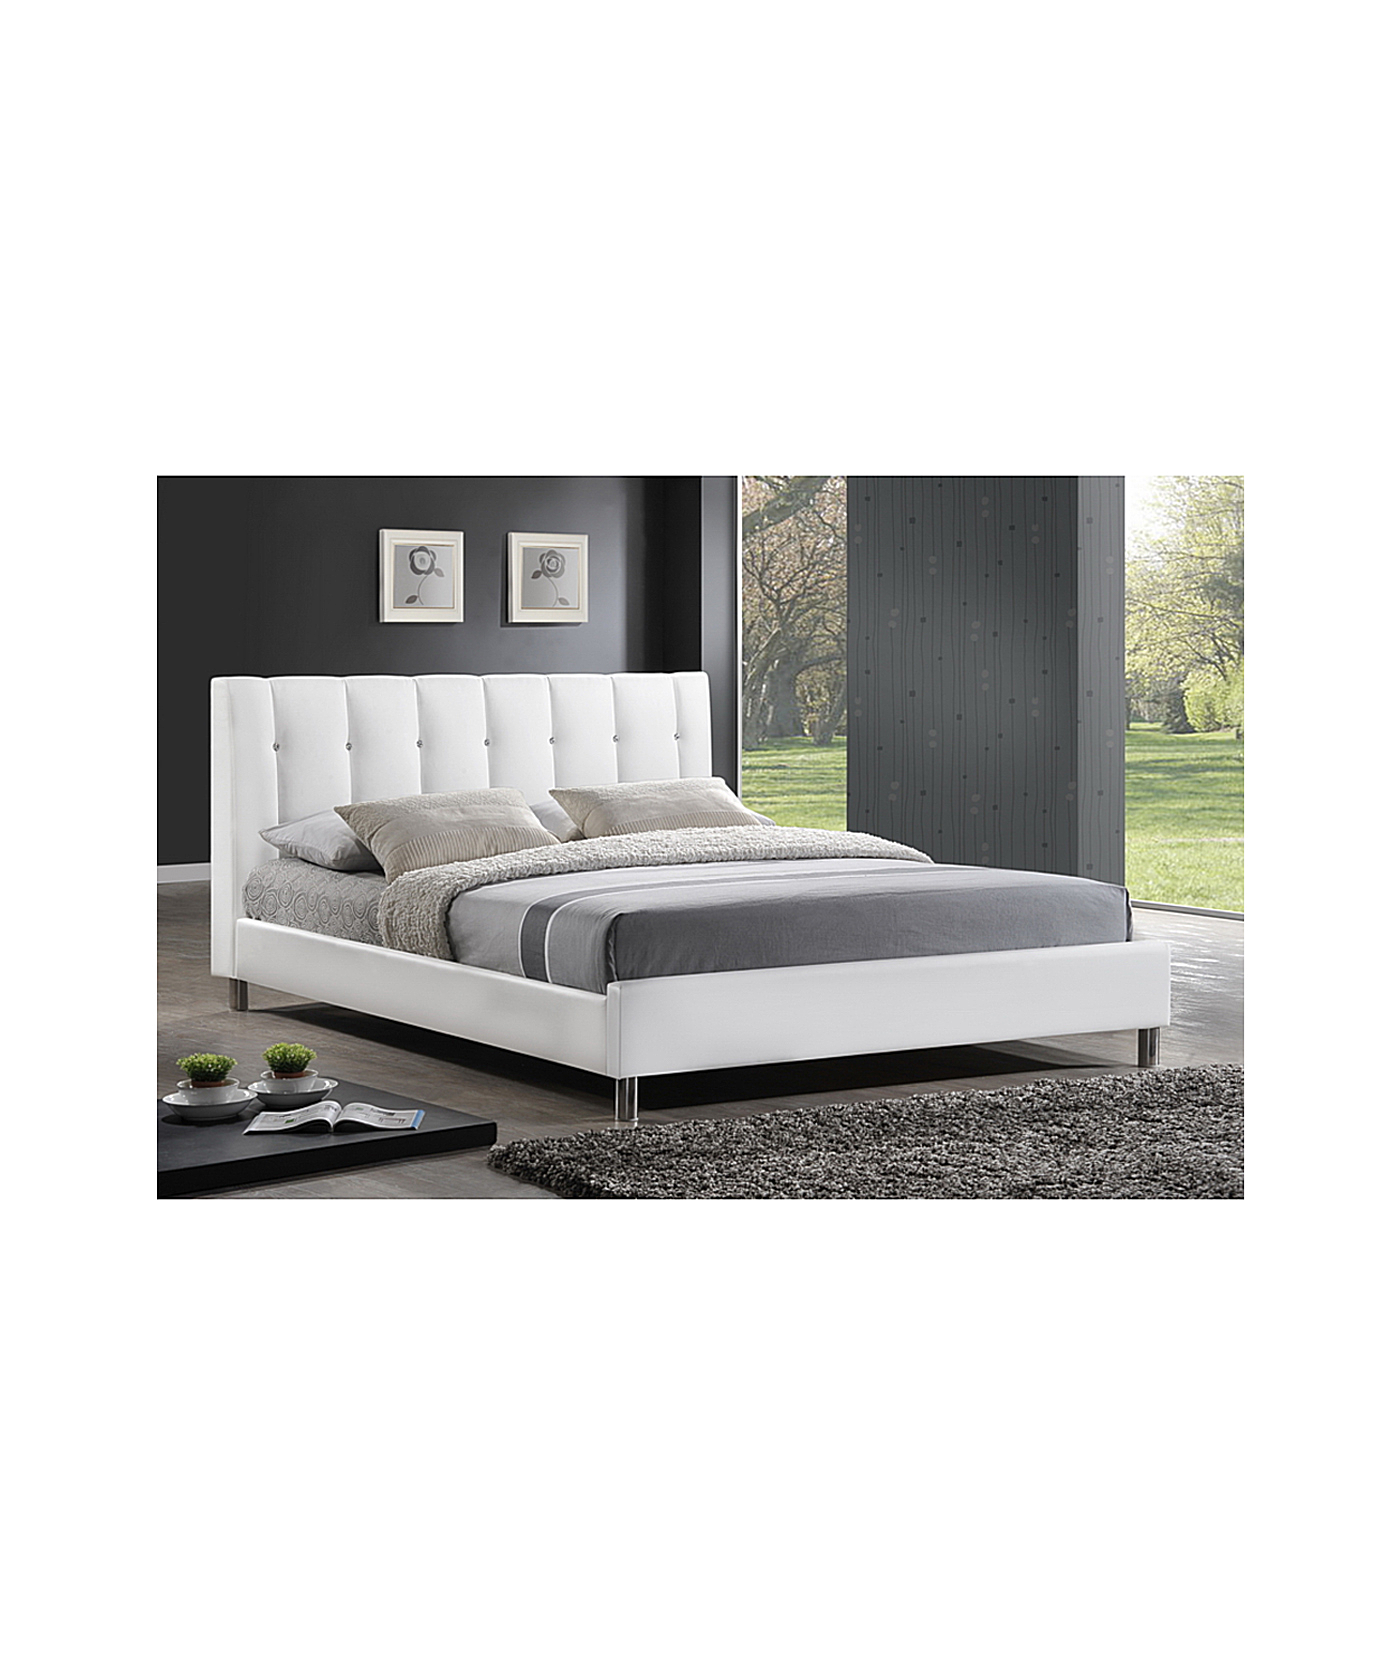 Baxton Studios Vino Modern Bed with Upholstered Headboard